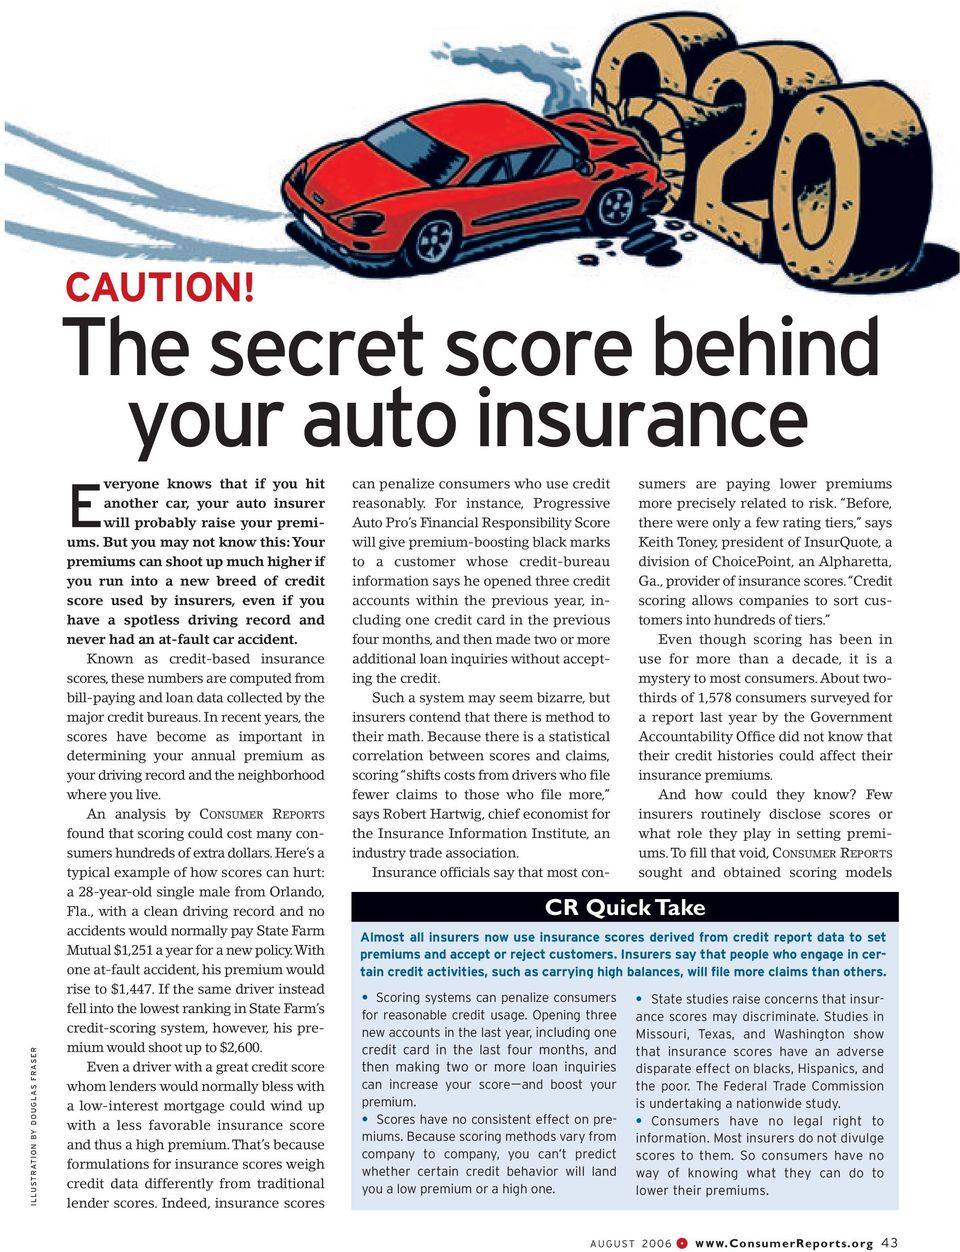 car accident. Known as credit-based insurance scores, these numbers are computed from bill-paying and loan data collected by the major credit bureaus.